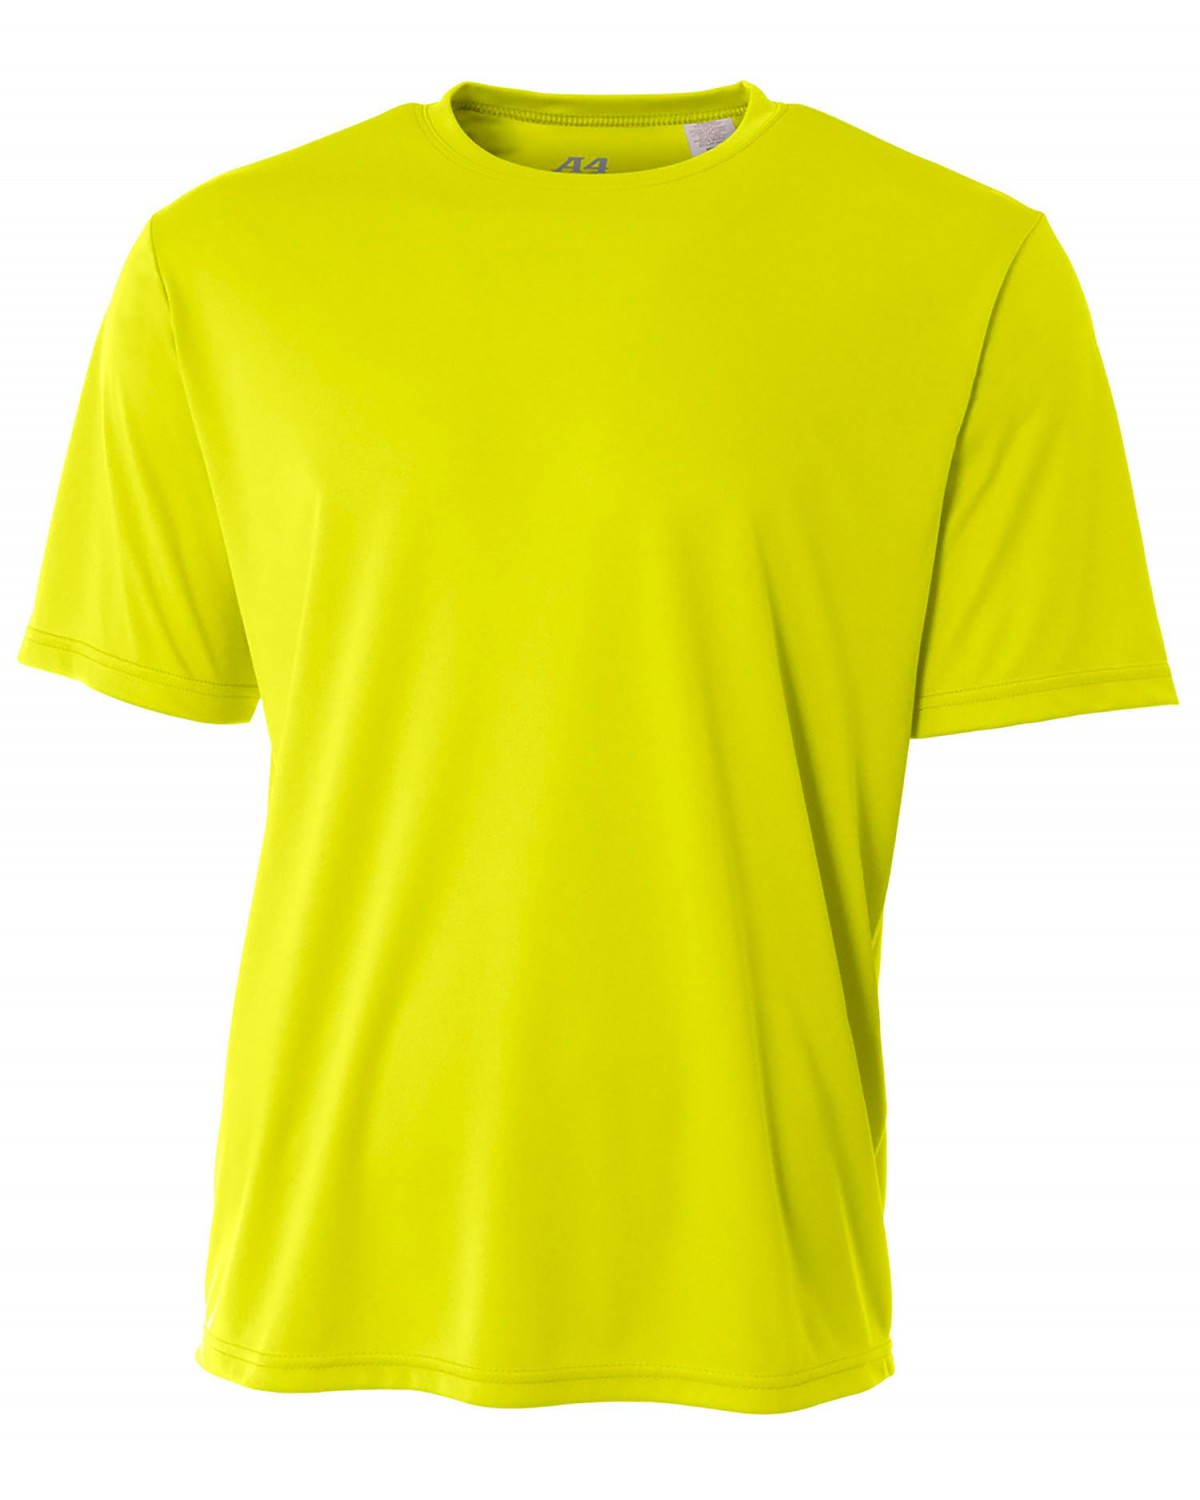 A4N3142 A4 SAFETY YELLOW